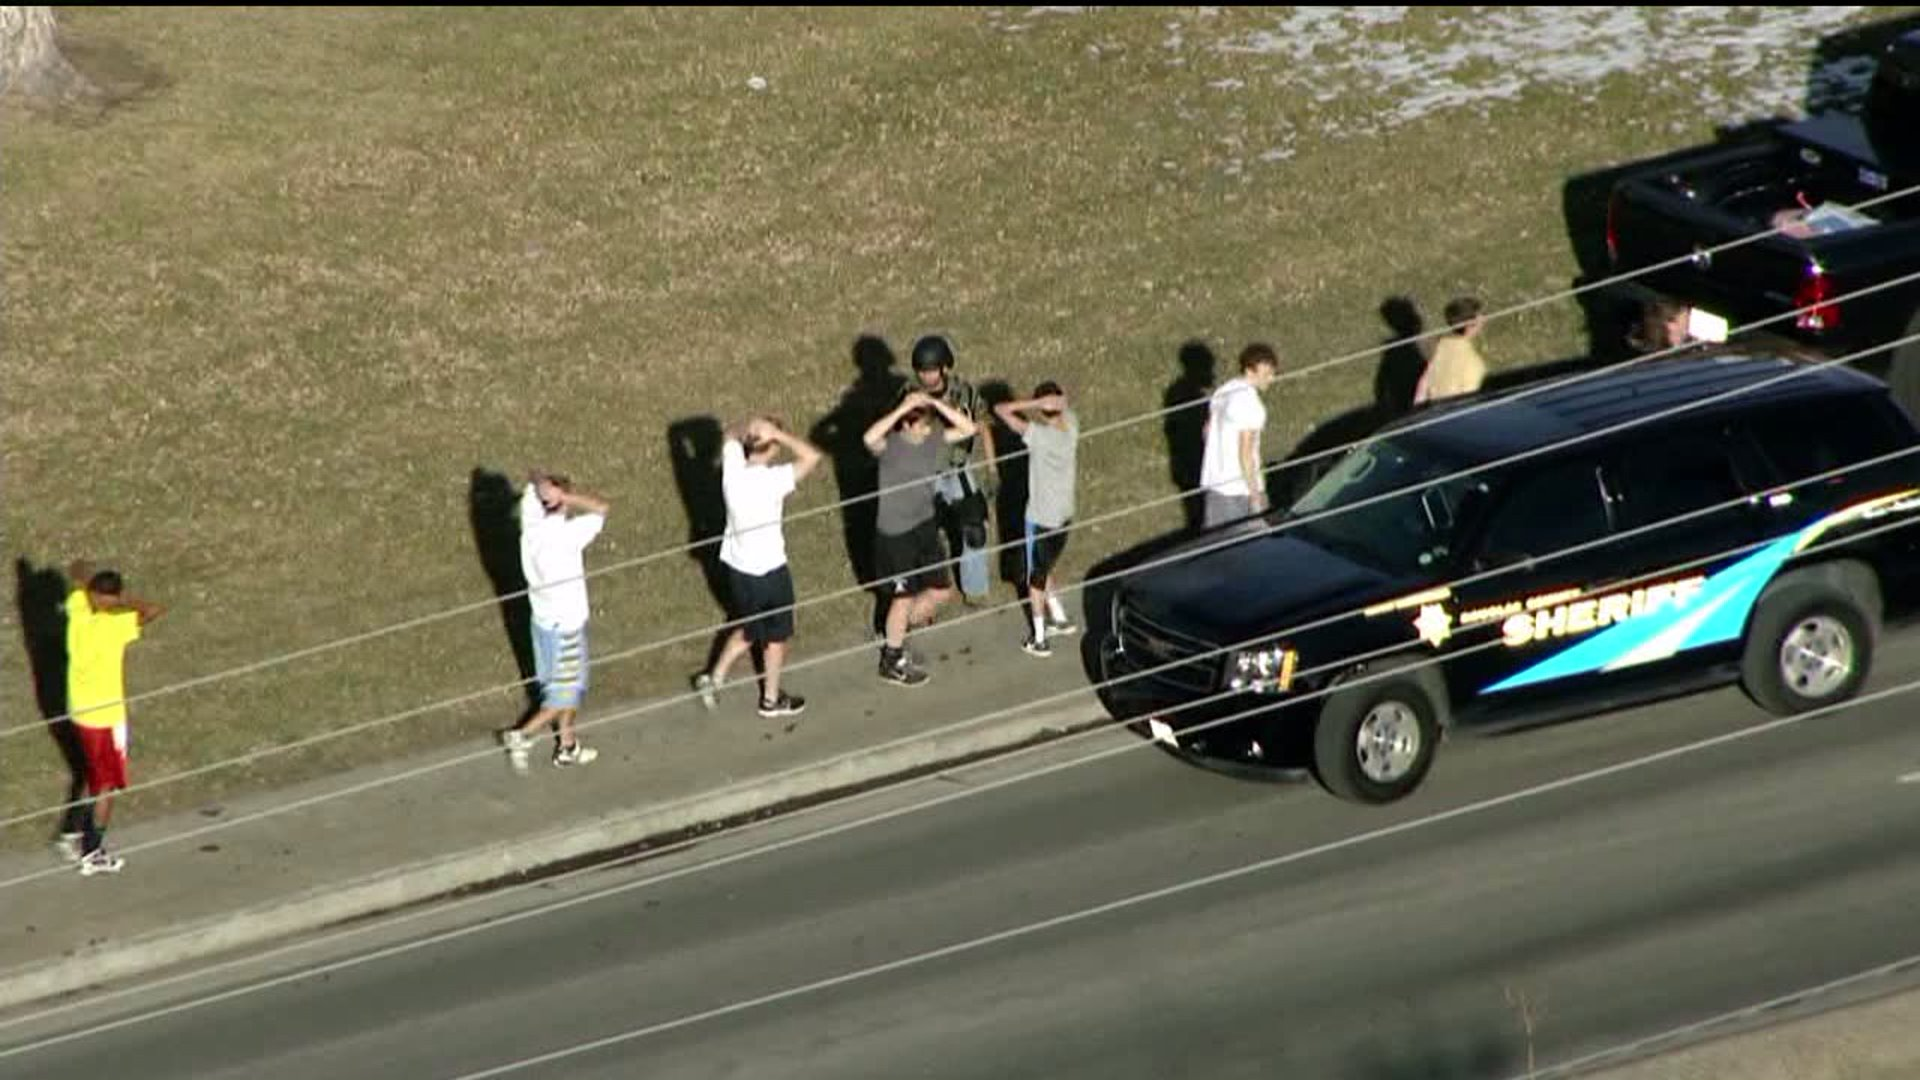 Students evacuated from Arapahoe High School in Littleton, Colo